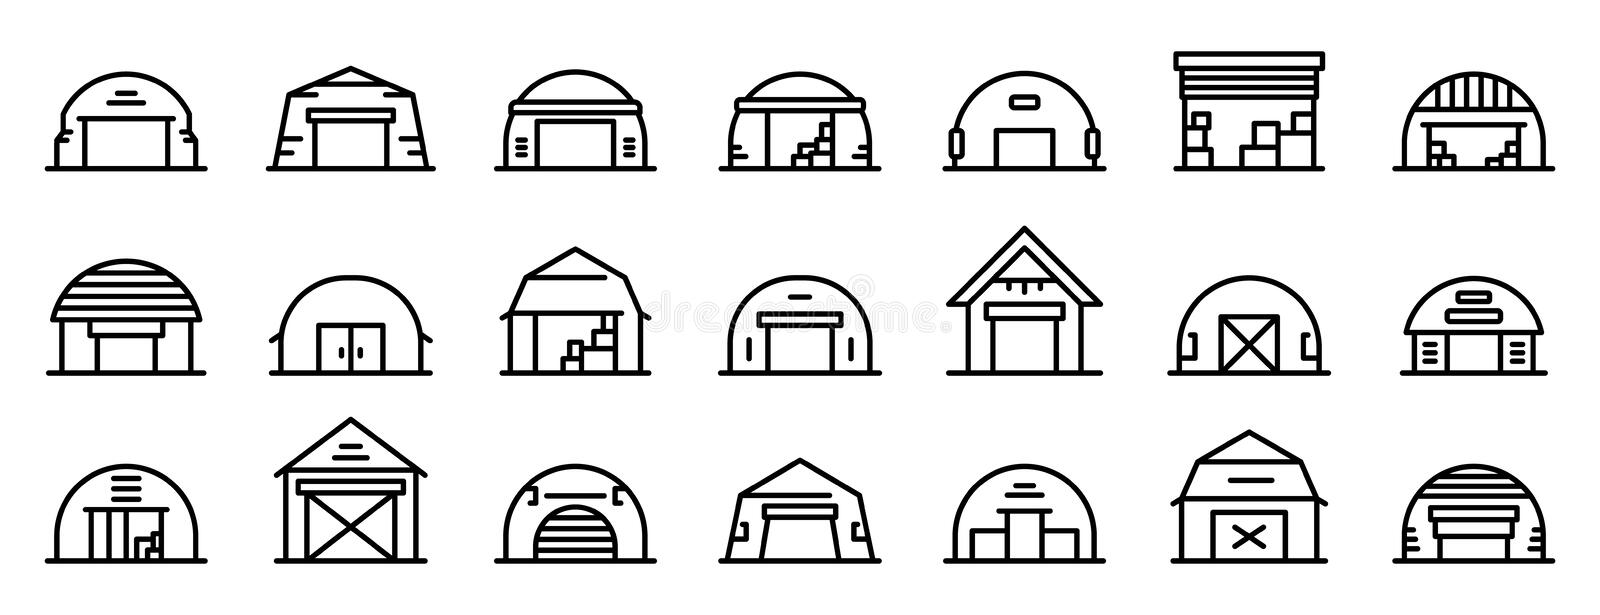 Hangar icons set, outline style vector illustration